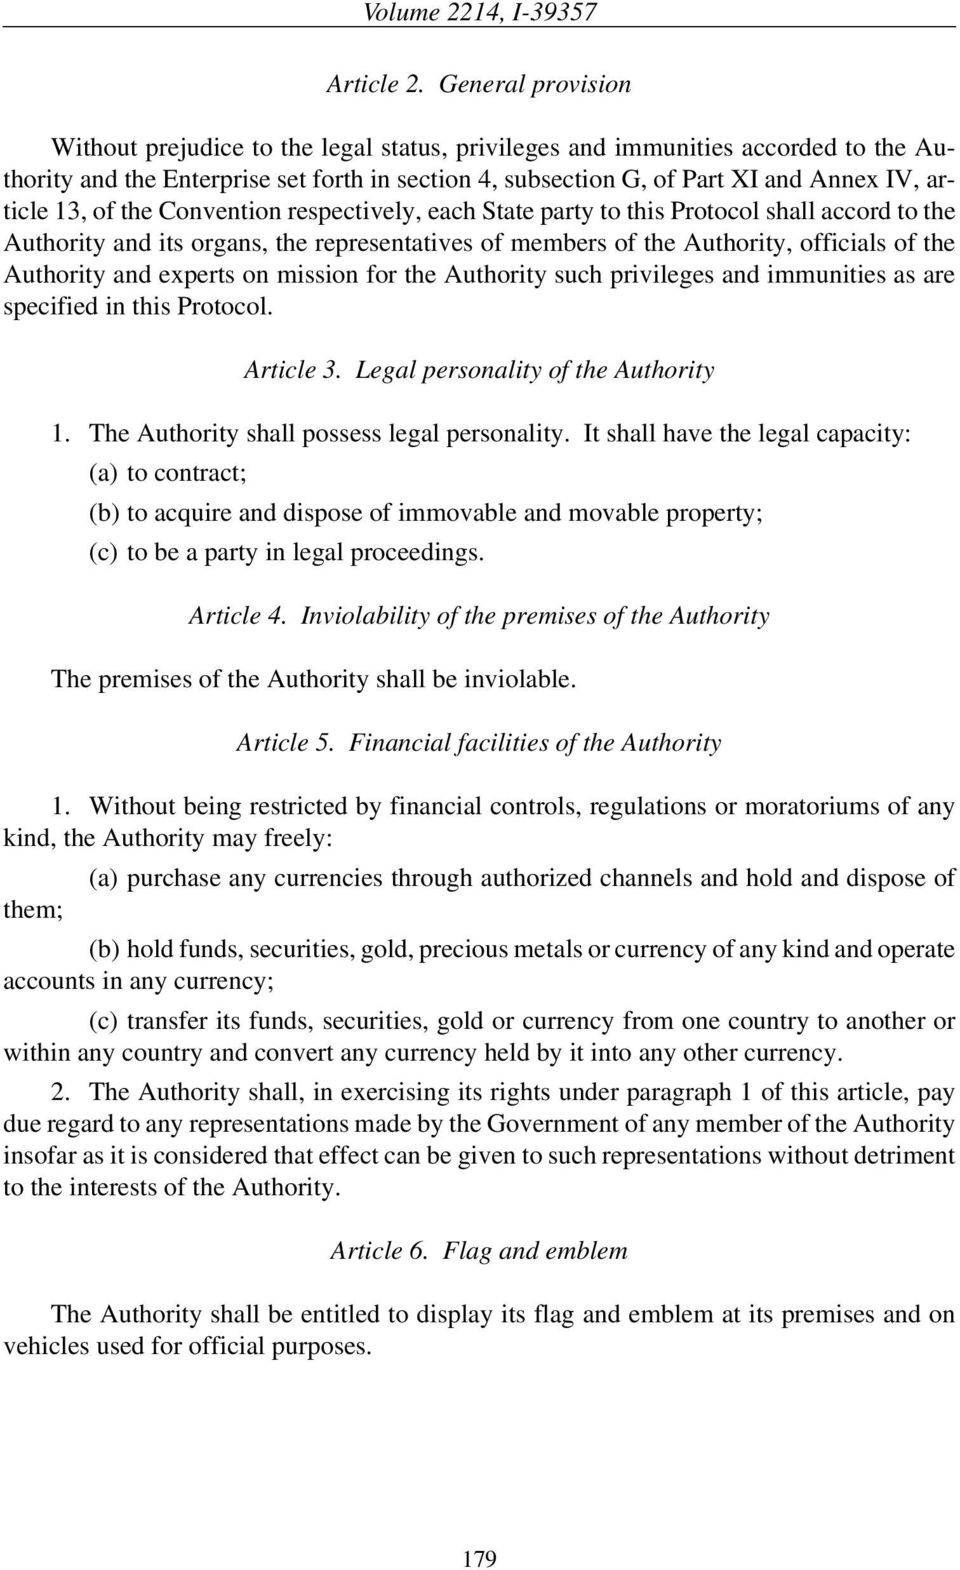 13, of the Convention respectively, each State party to this Protocol shall accord to the Authority and its organs, the representatives of members of the Authority, officials of the Authority and